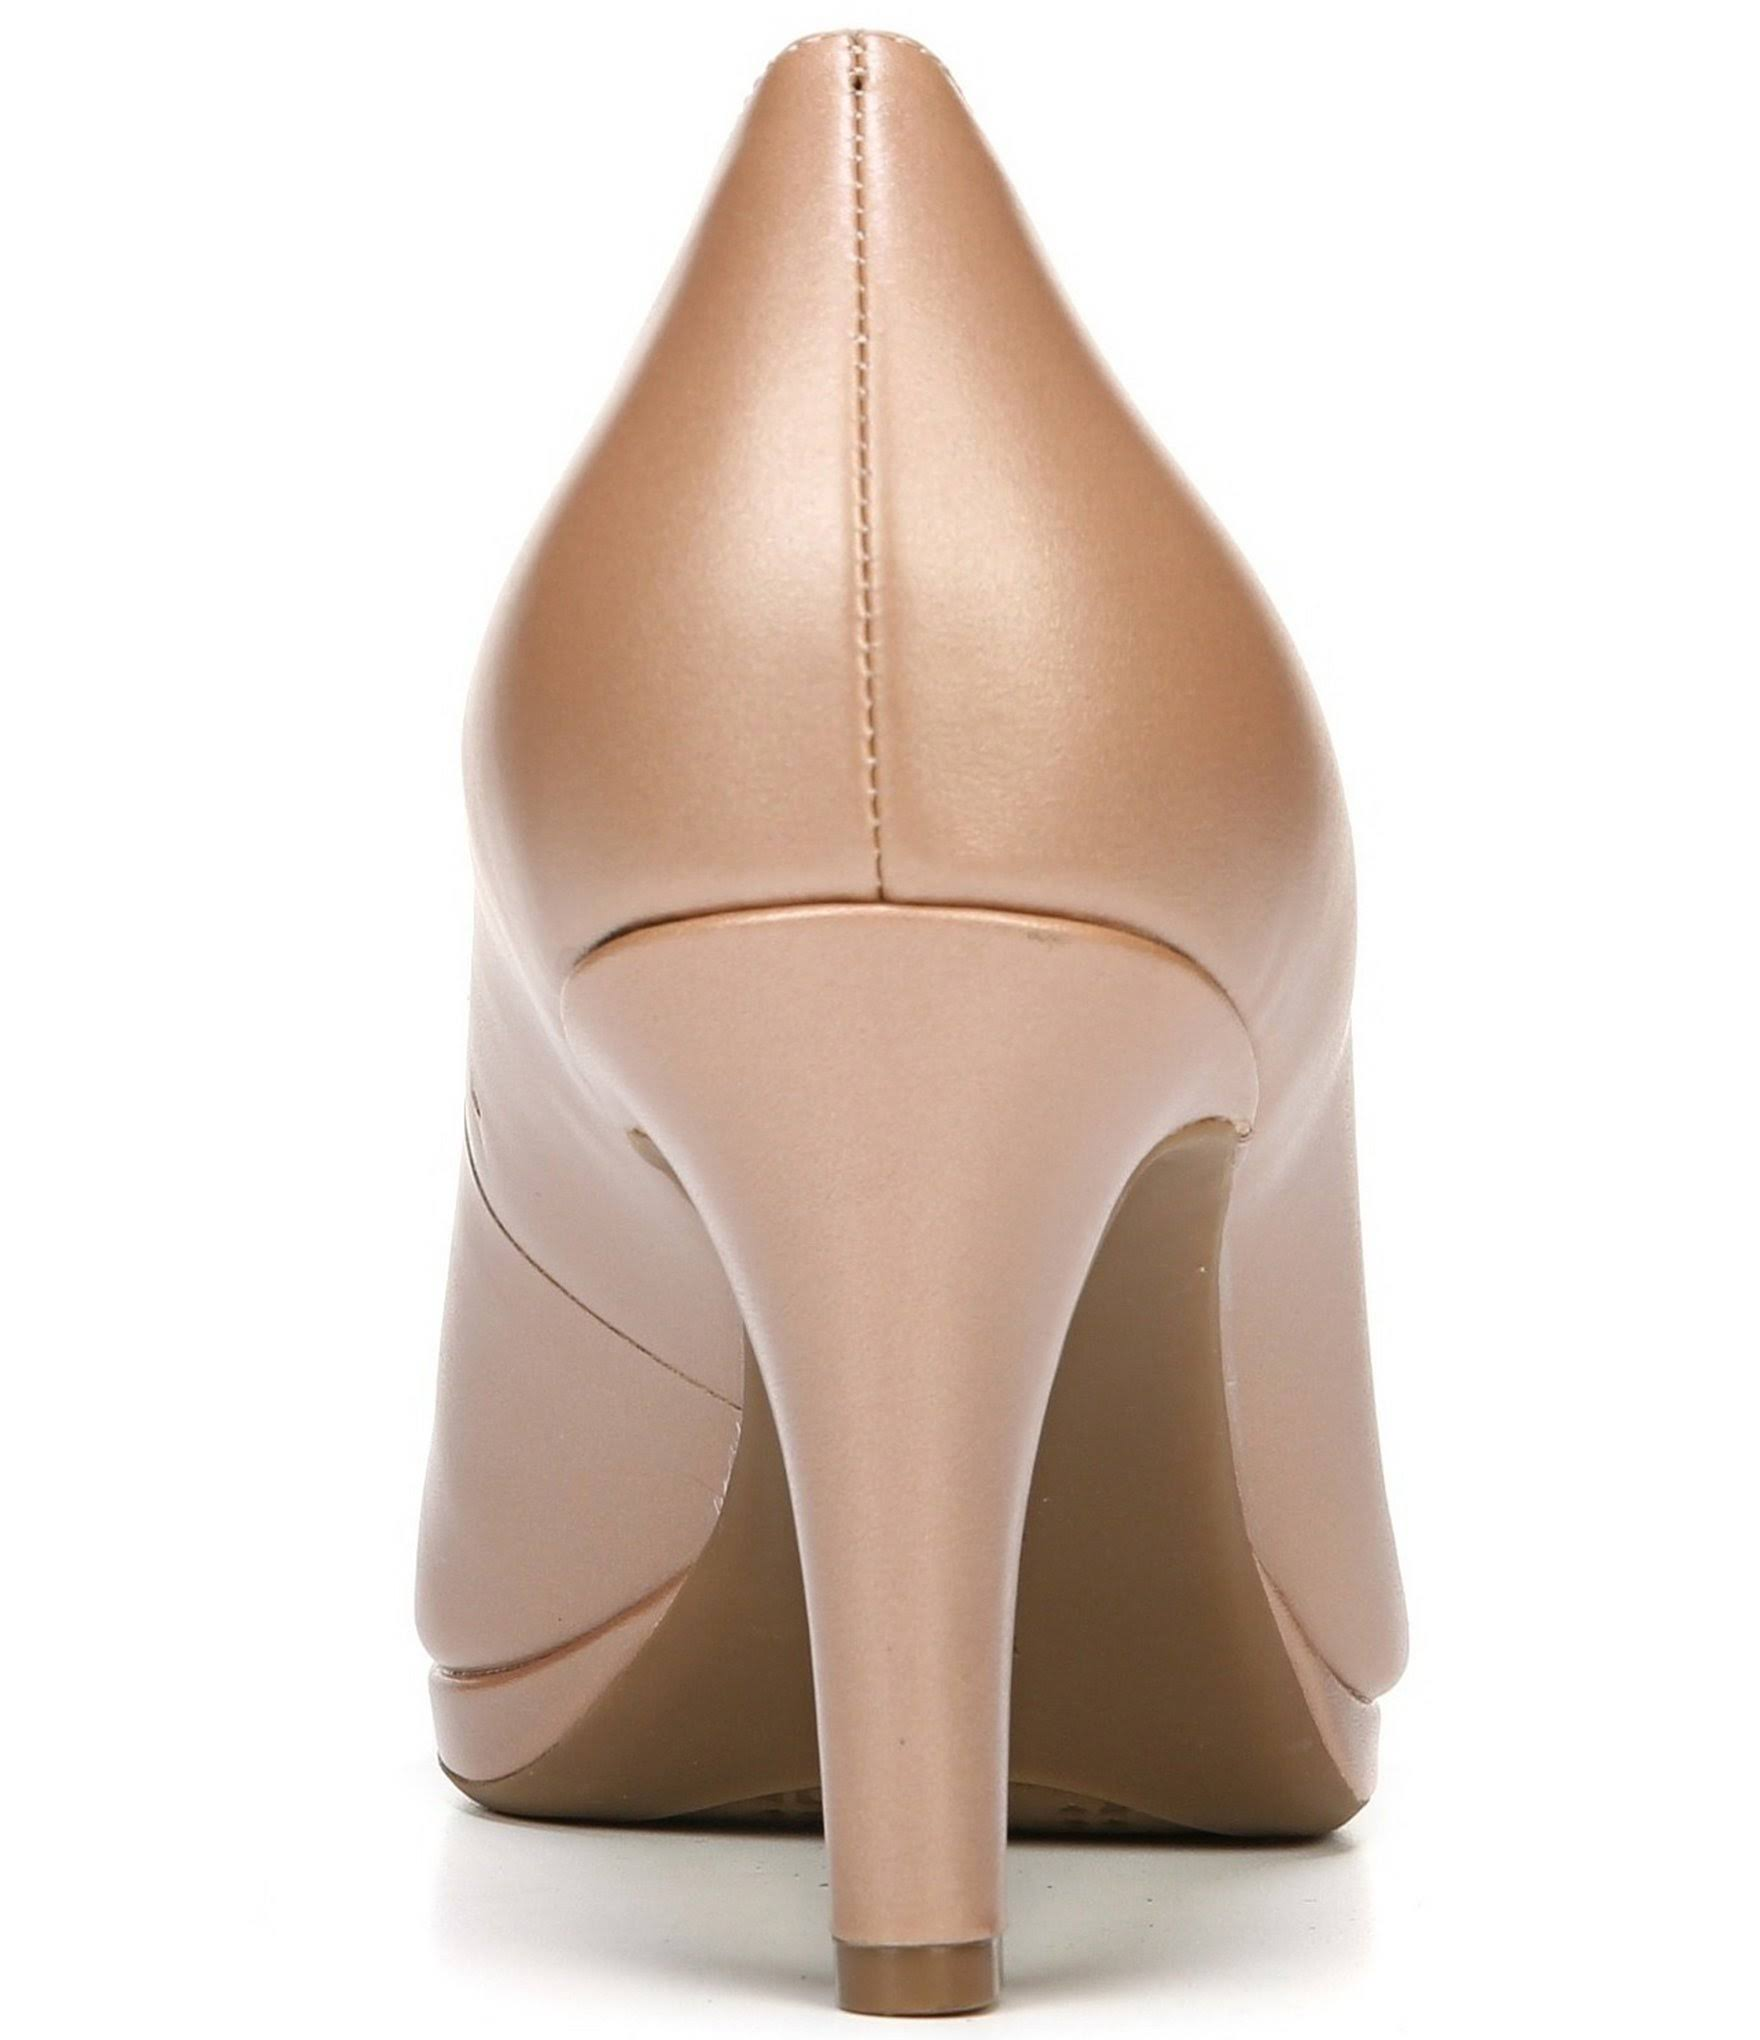 Pumps Michelle 7 5 Chai Dames N Naturalizer kZuiPX